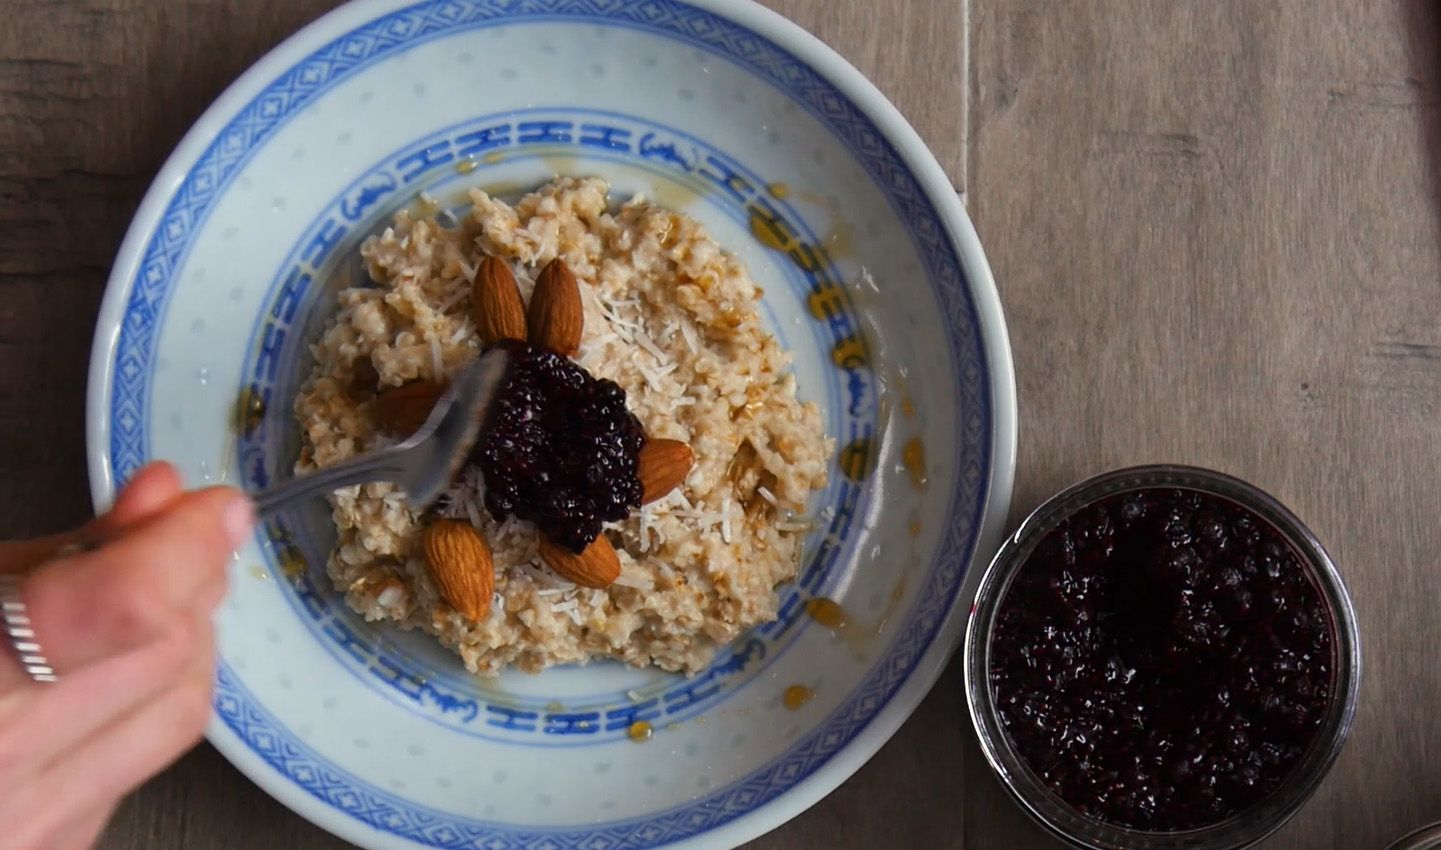 blueberry chia jam being spooned on top of oatmeal